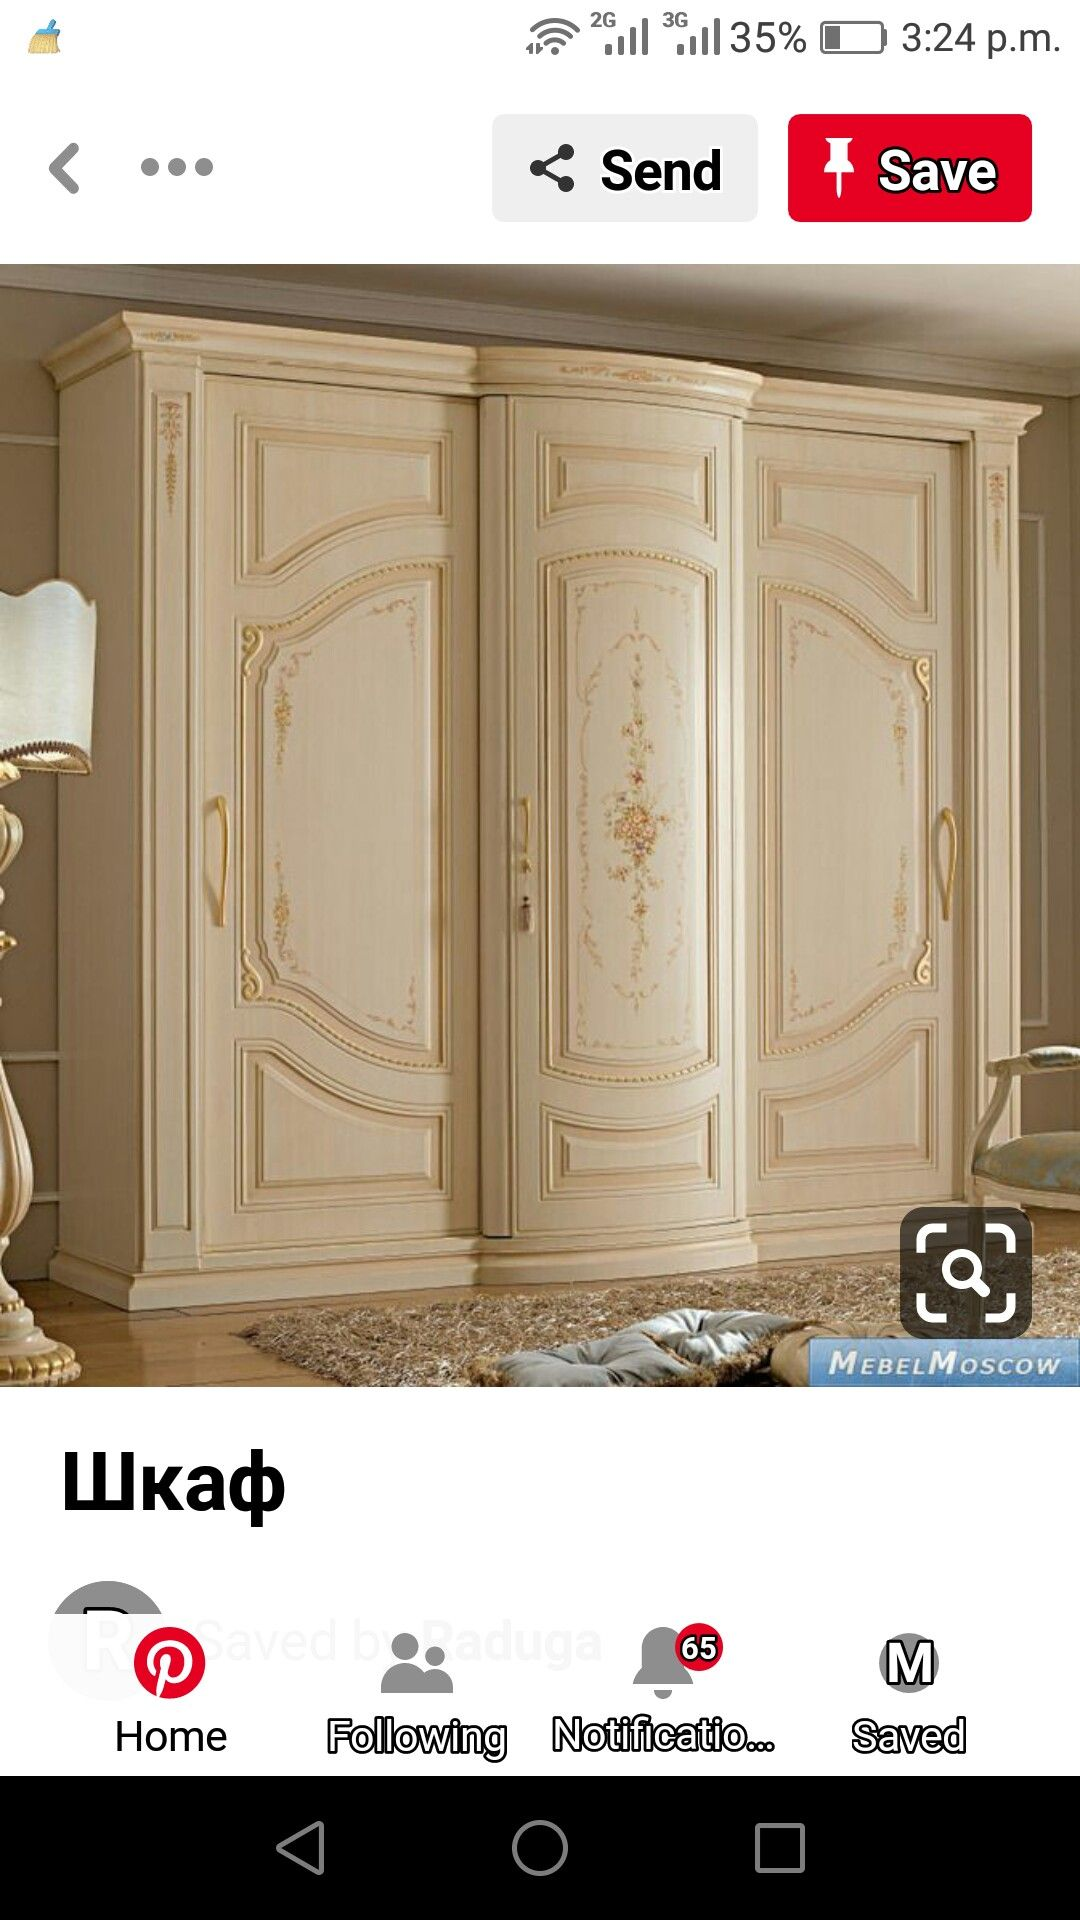 Lutfifurniture Com Instagram Lutfifurniturejepara: Pin By Mohamed Desouky On Ideas For The House In 2019